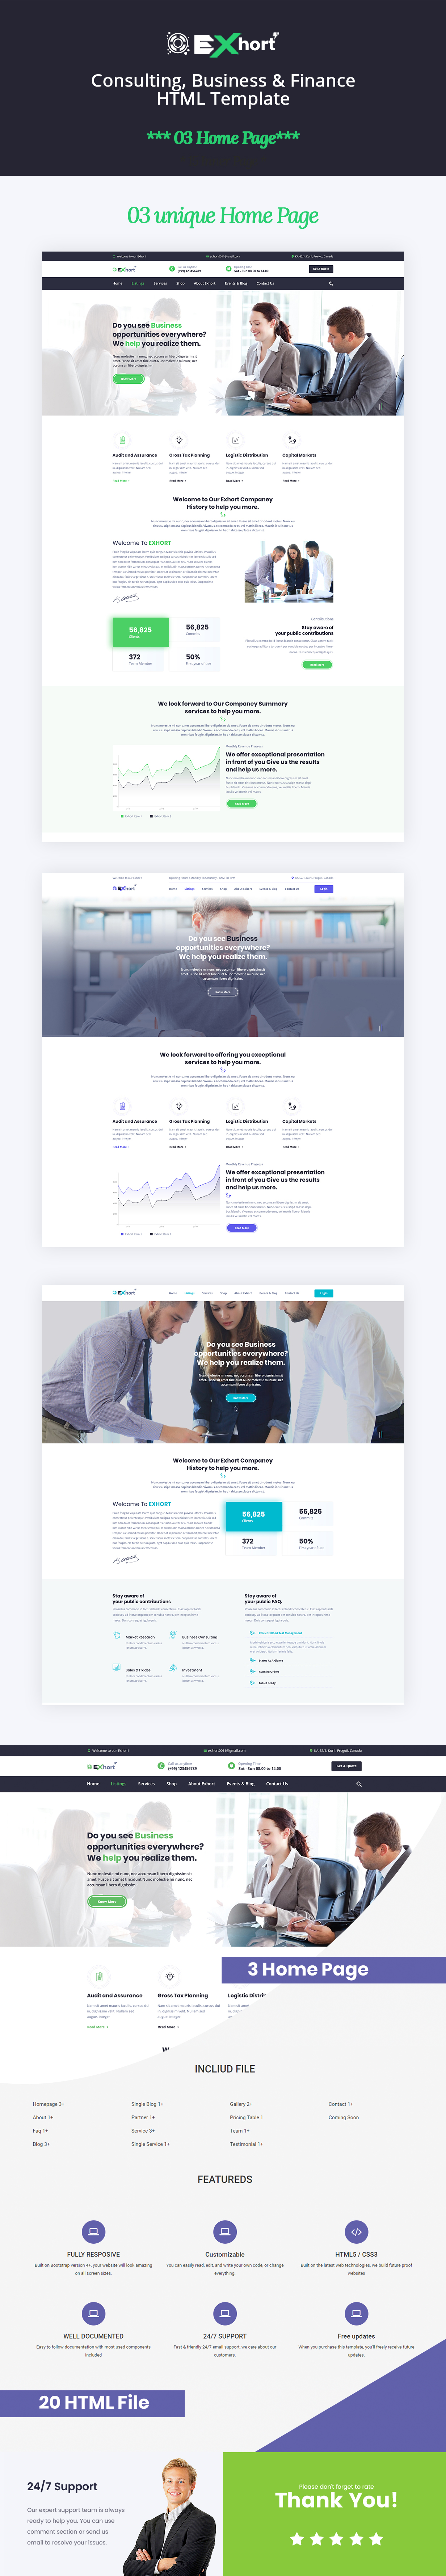 Exhort - Consulting, Finance, Business Bootstrap 4 Template